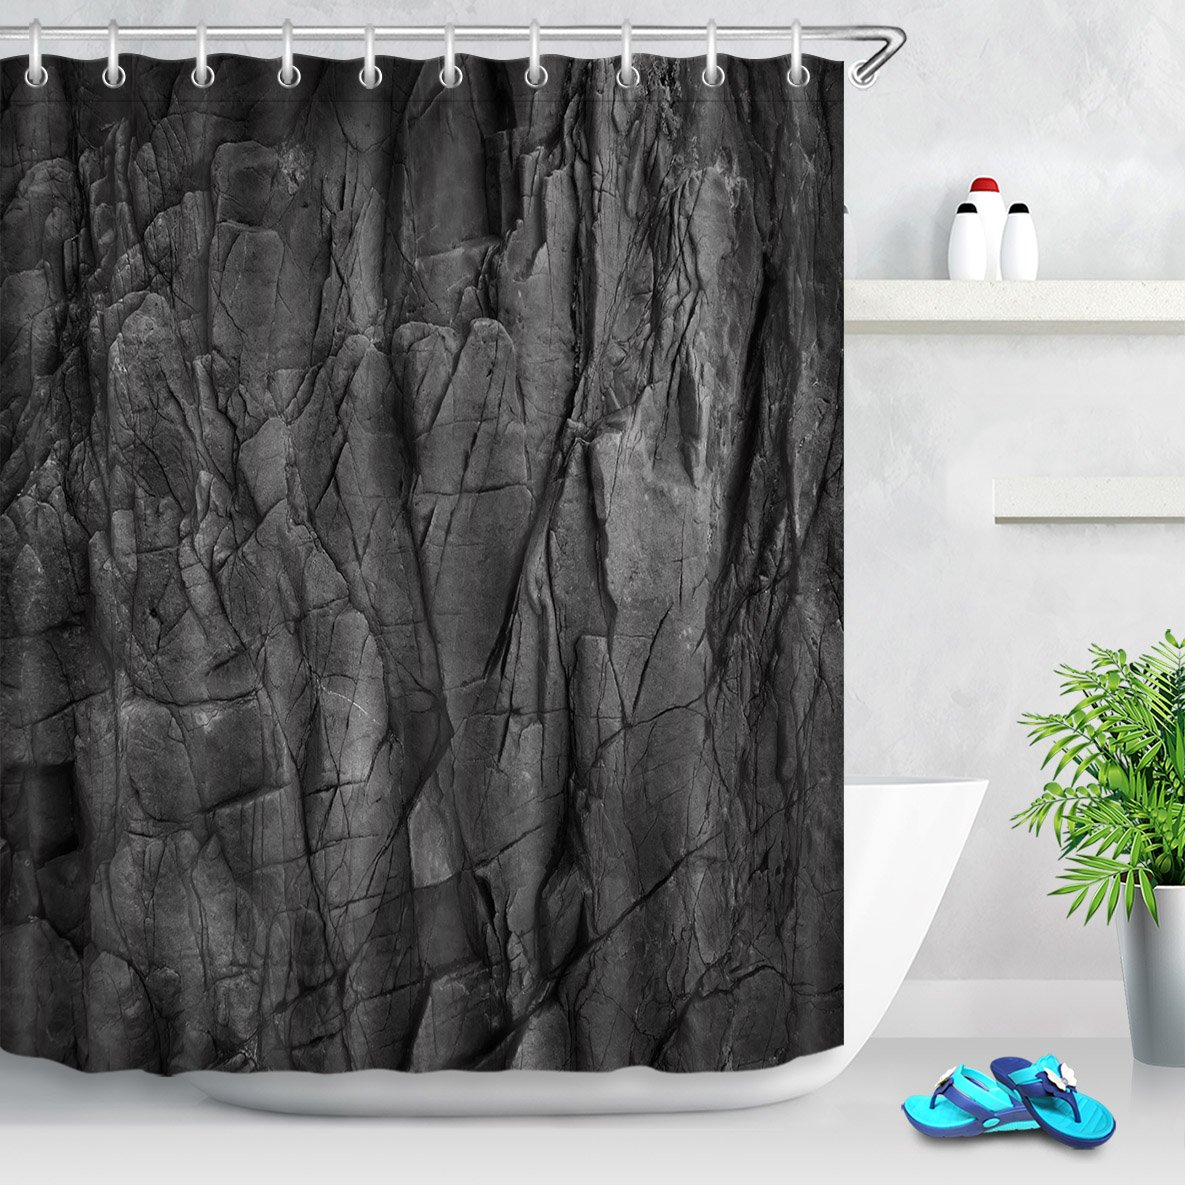 Amazon LB Modern Marble Rock Shower Curtain3D Printing Mildew Resistant Fabric Fashion Bathroom Decor72x72 Inches With 12 HooksBlack Home Kitchen